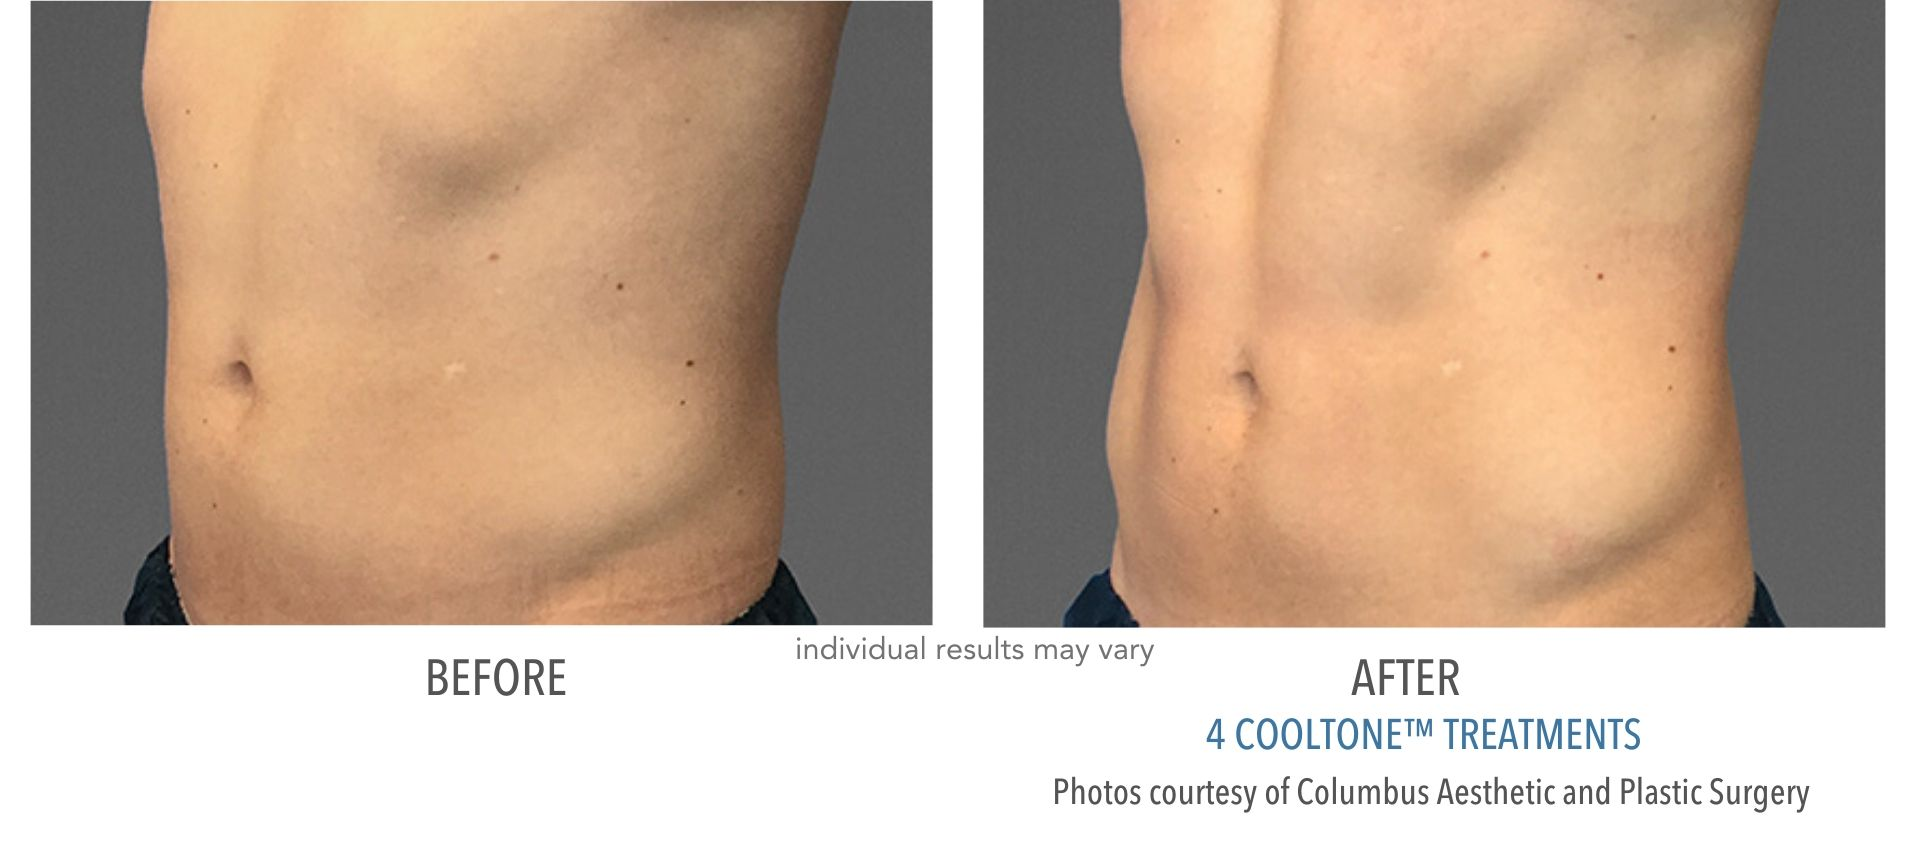 cooltone before and after at Always Beautiful Medspa in Aurora, CO